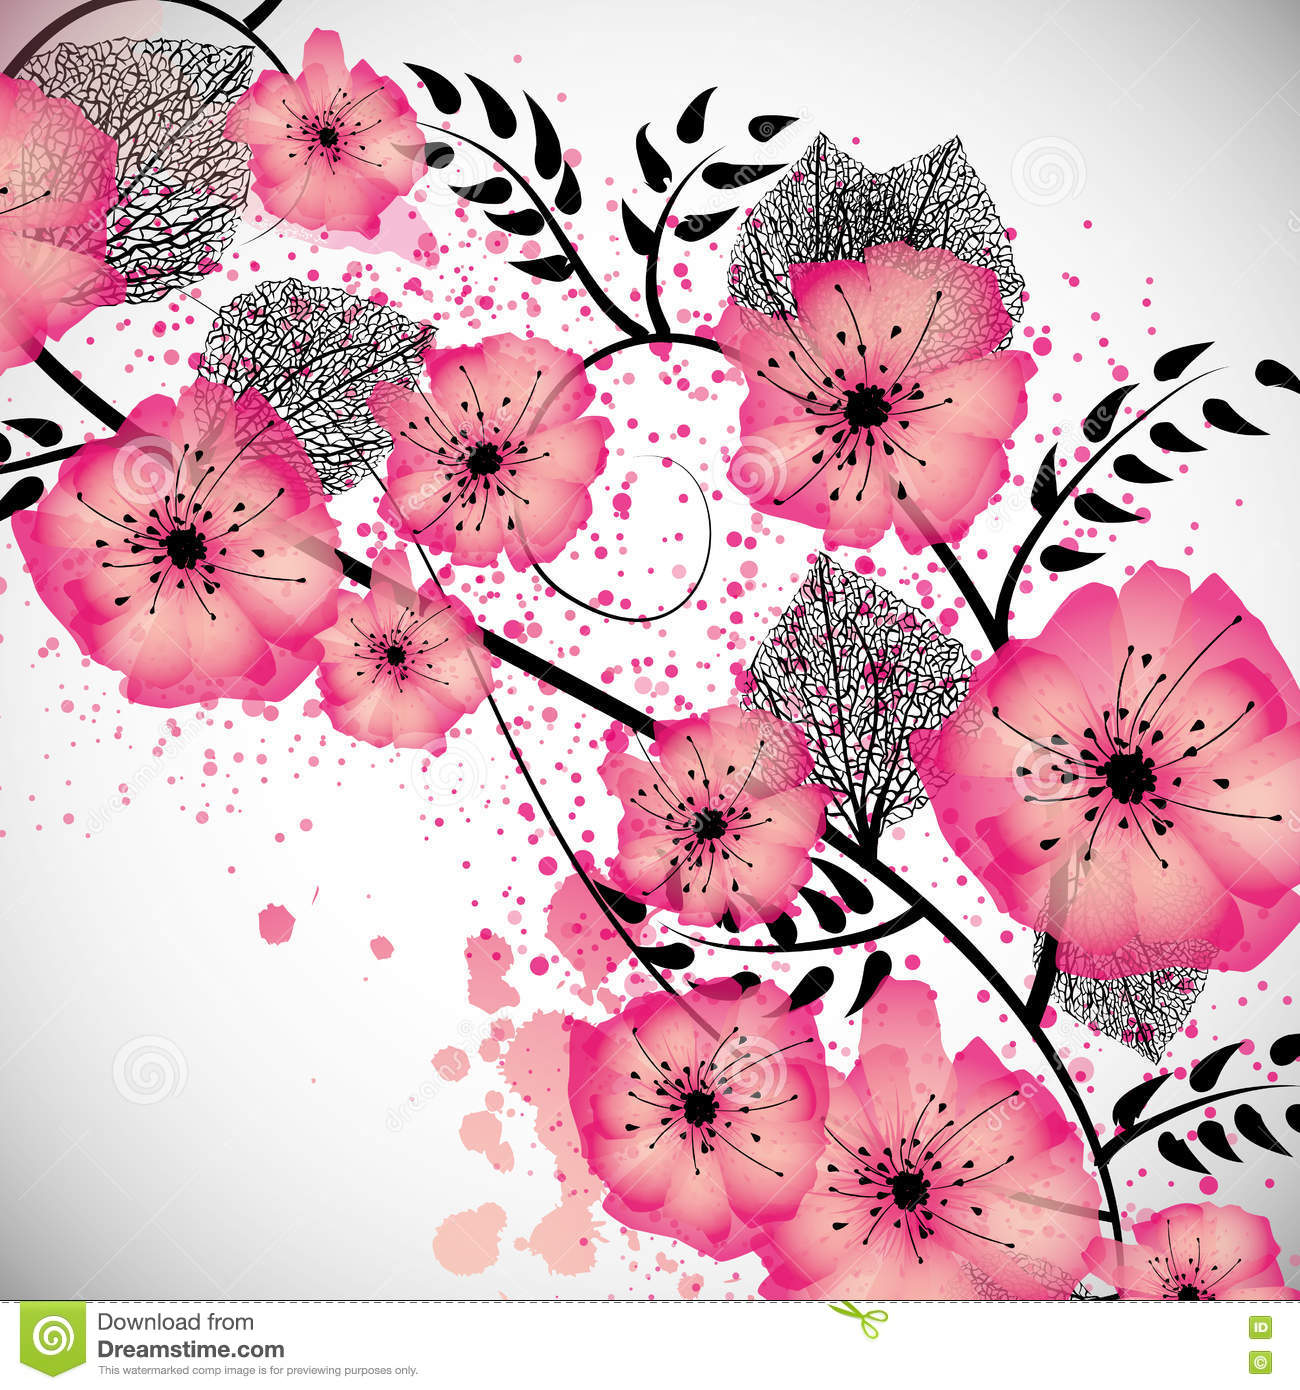 Sweet Flowers Background Stock Vector Illustration Of Soft 75350702